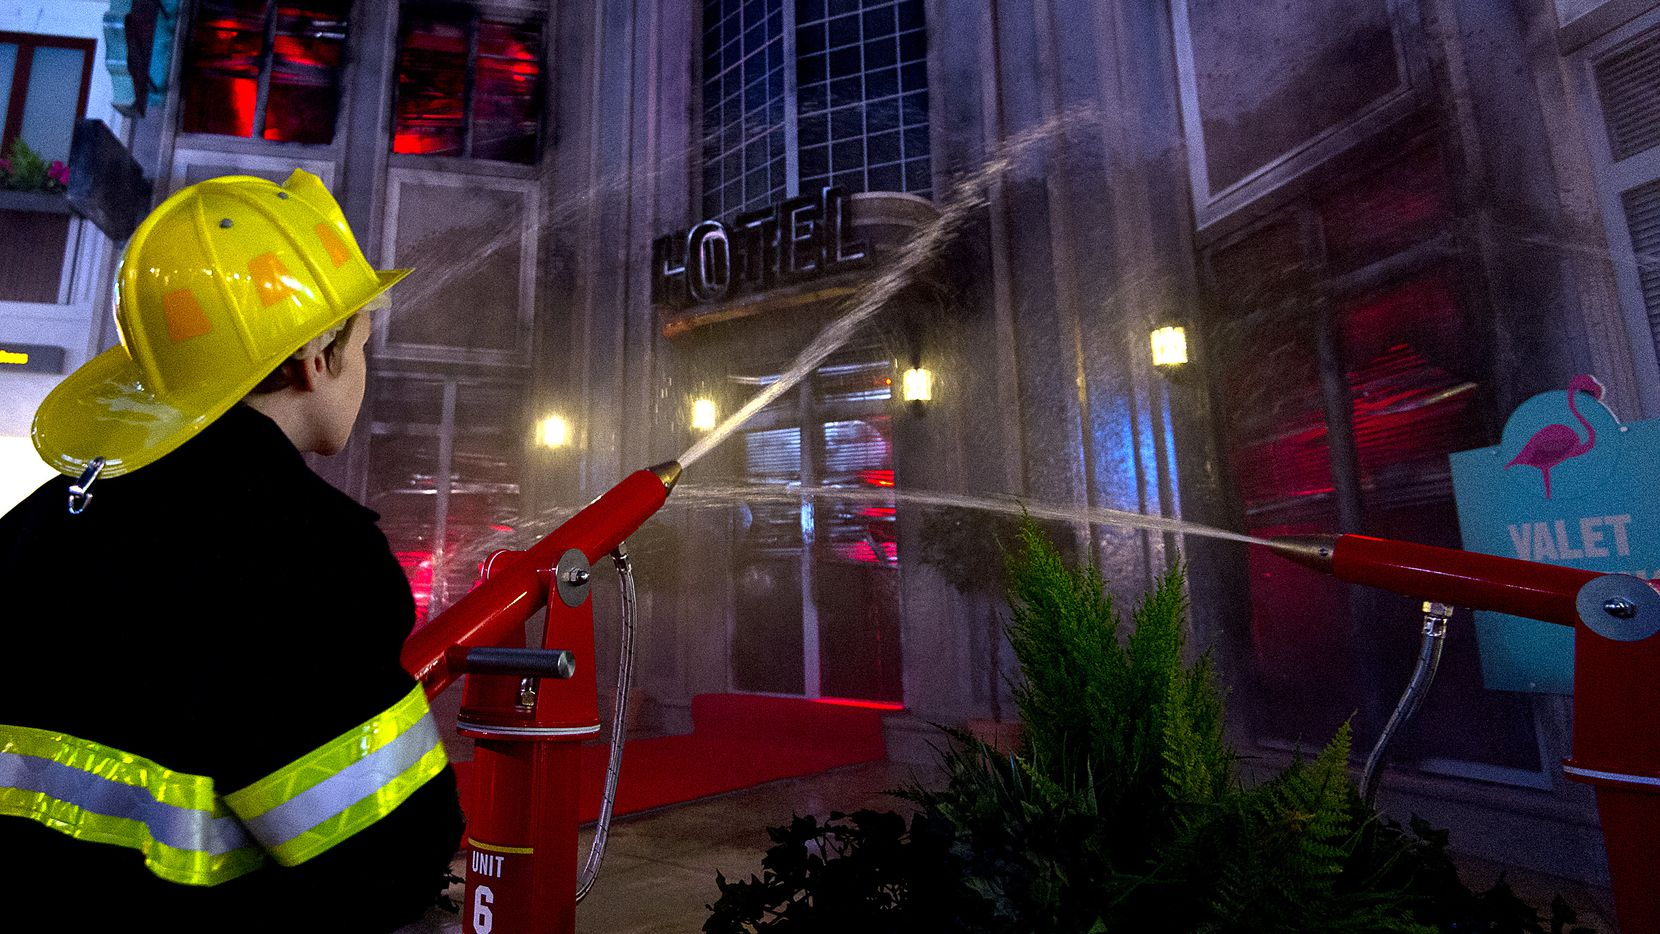 Kids can pretend to be firefighters at the KidZania in London shown here in 2015.